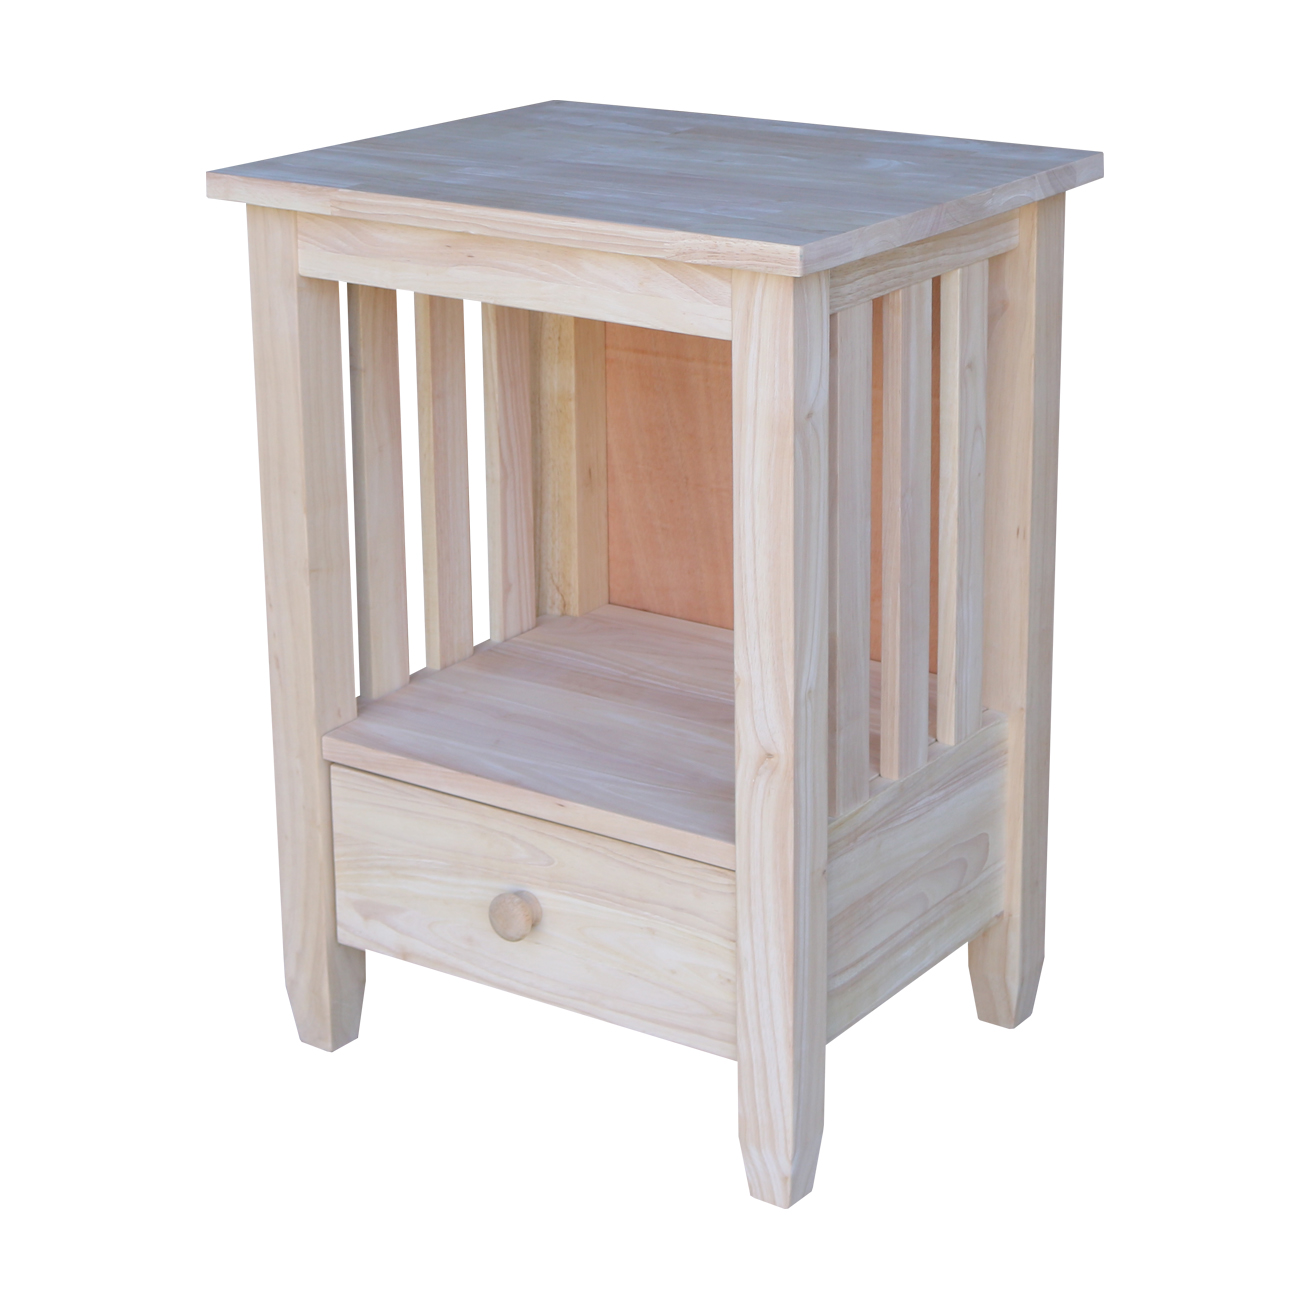 International Concepts Bj6Td Mission Tall End Table with Drawer, Ready To Finish